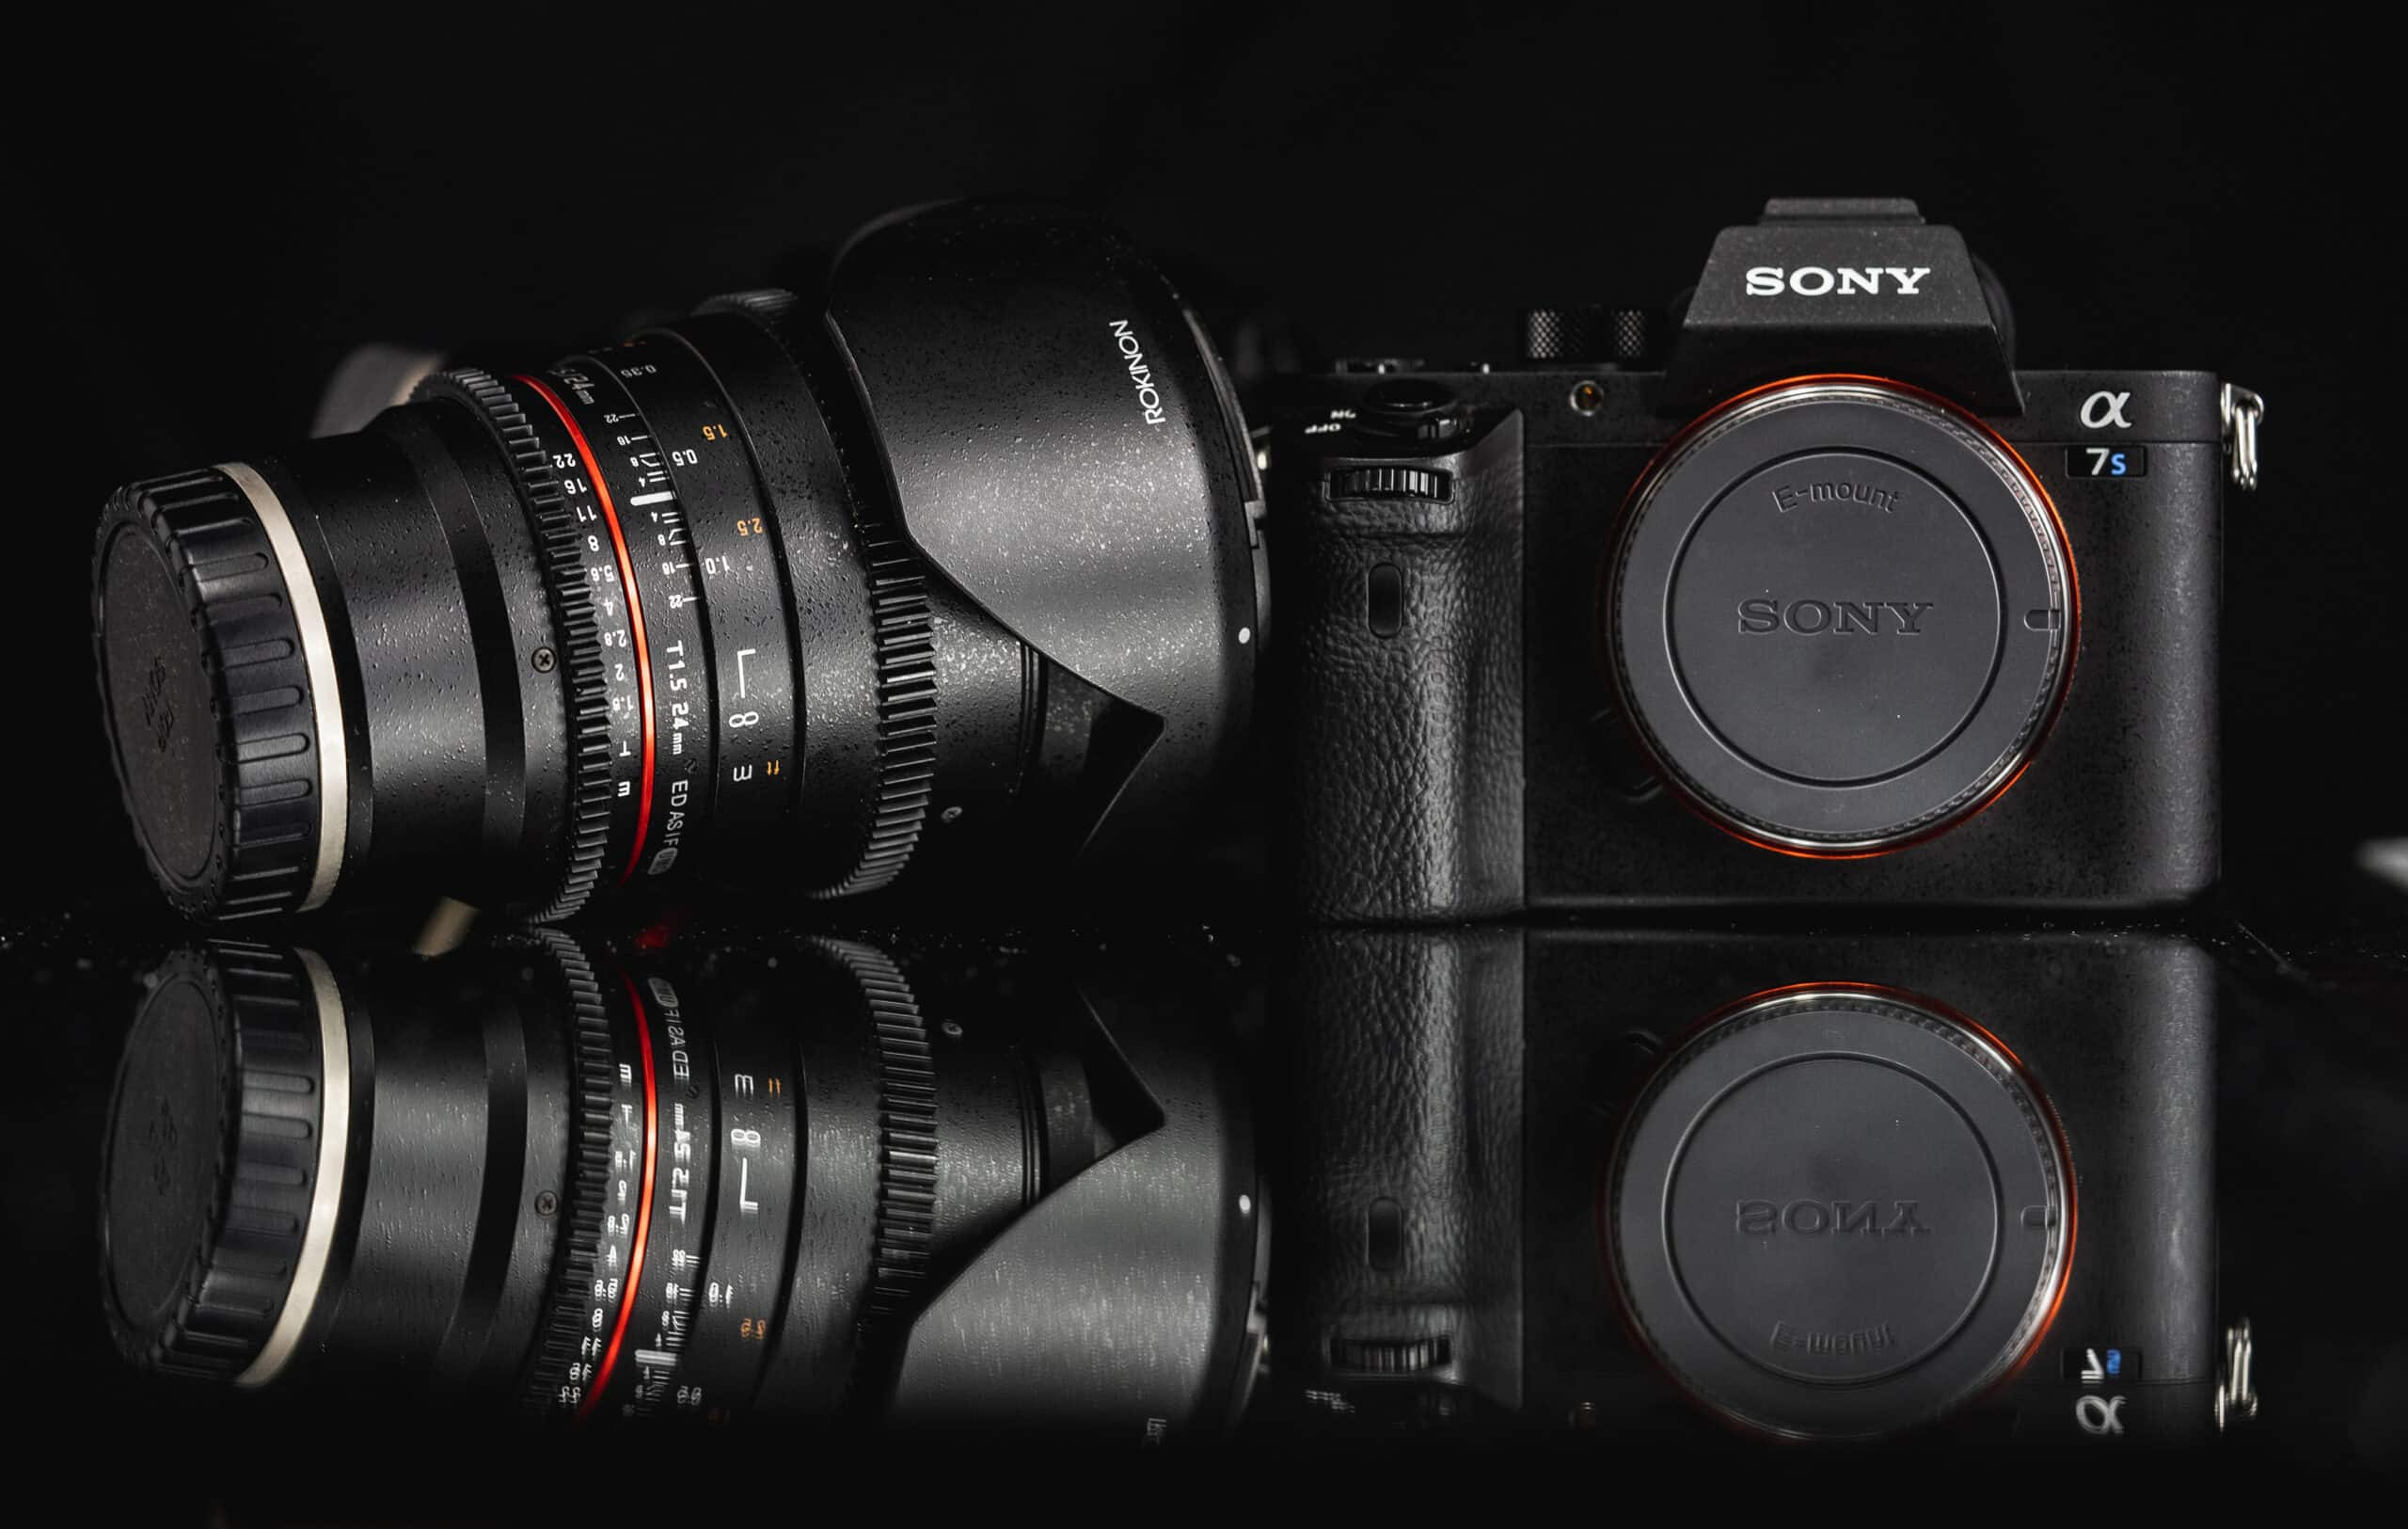 Sony a7ii and Rokinon 24mm lens displayed on reflective surface